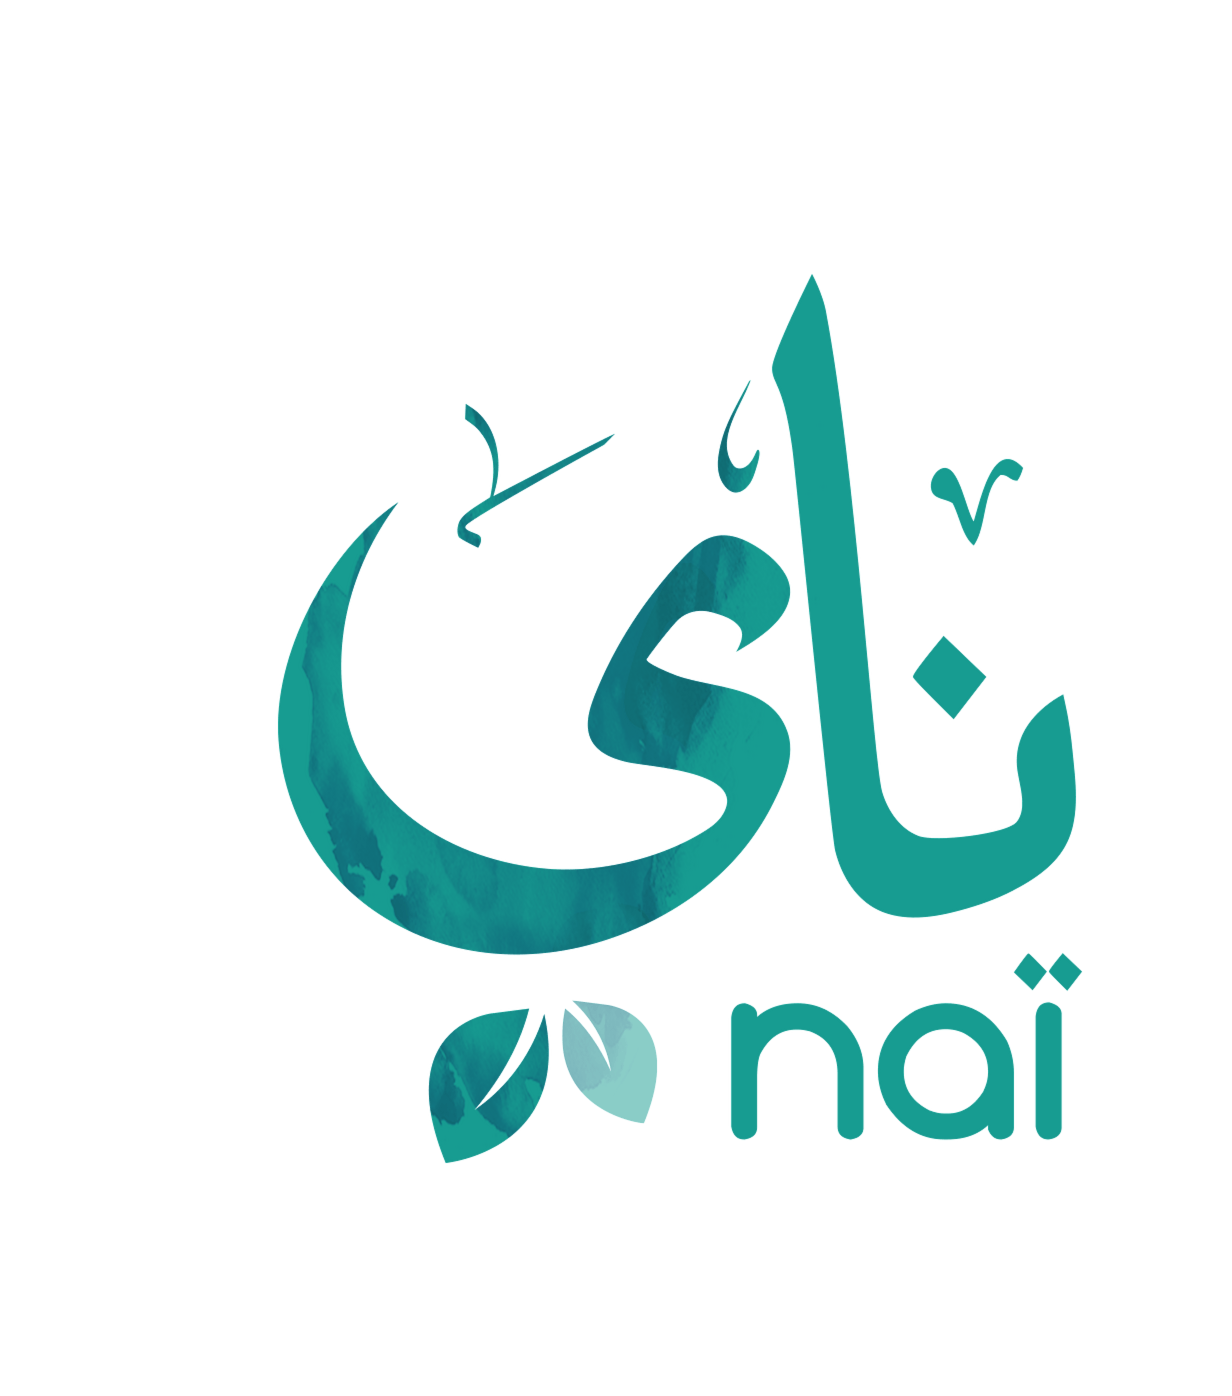 Nai Arabia Food Co DMCC - Gulfood 2019 - World's largest